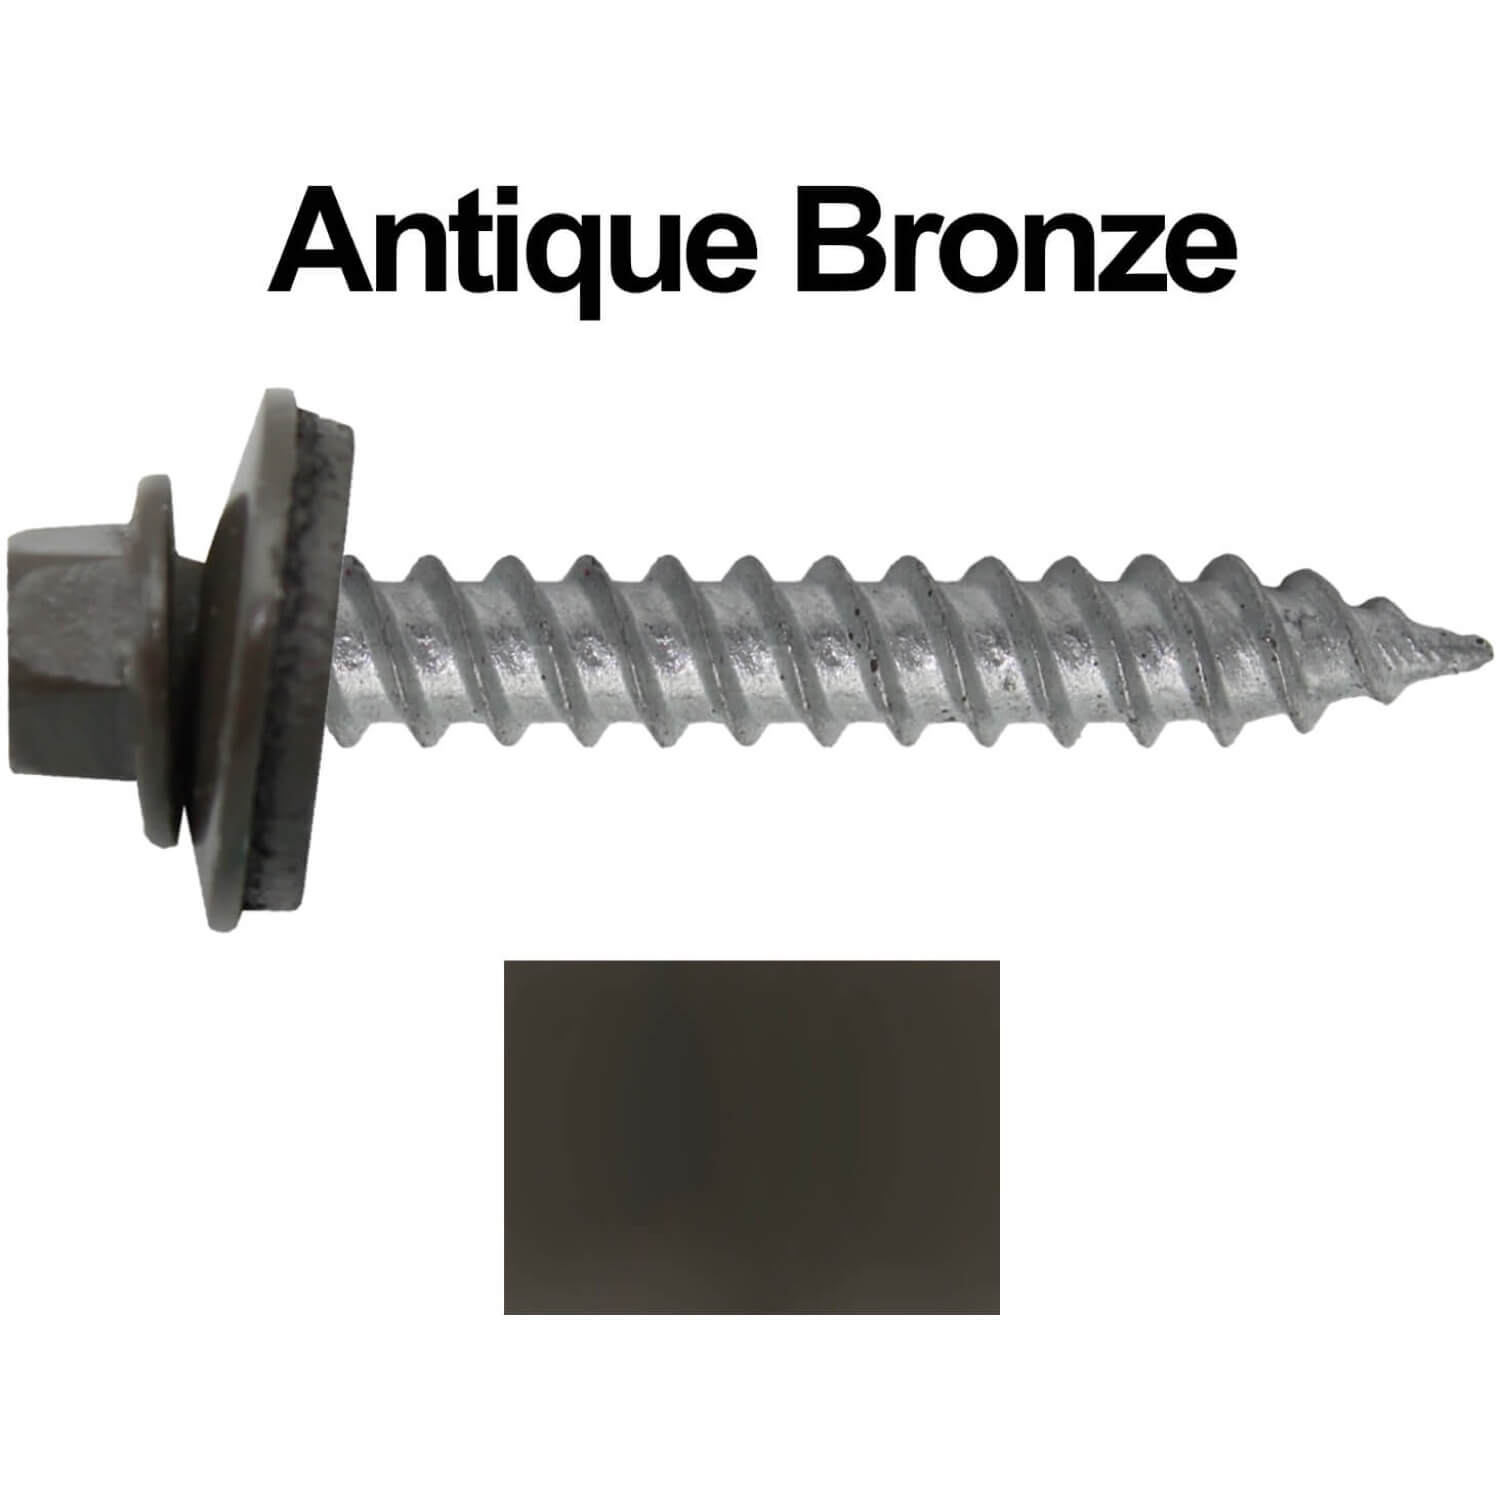 Metal Roofing Screw 250 12 X 1 1 2 Antique Bronze Hex Regrip Sheet Metal Roof Screw Sharp Point Metal To Wood Siding Screws 5 8 Epd